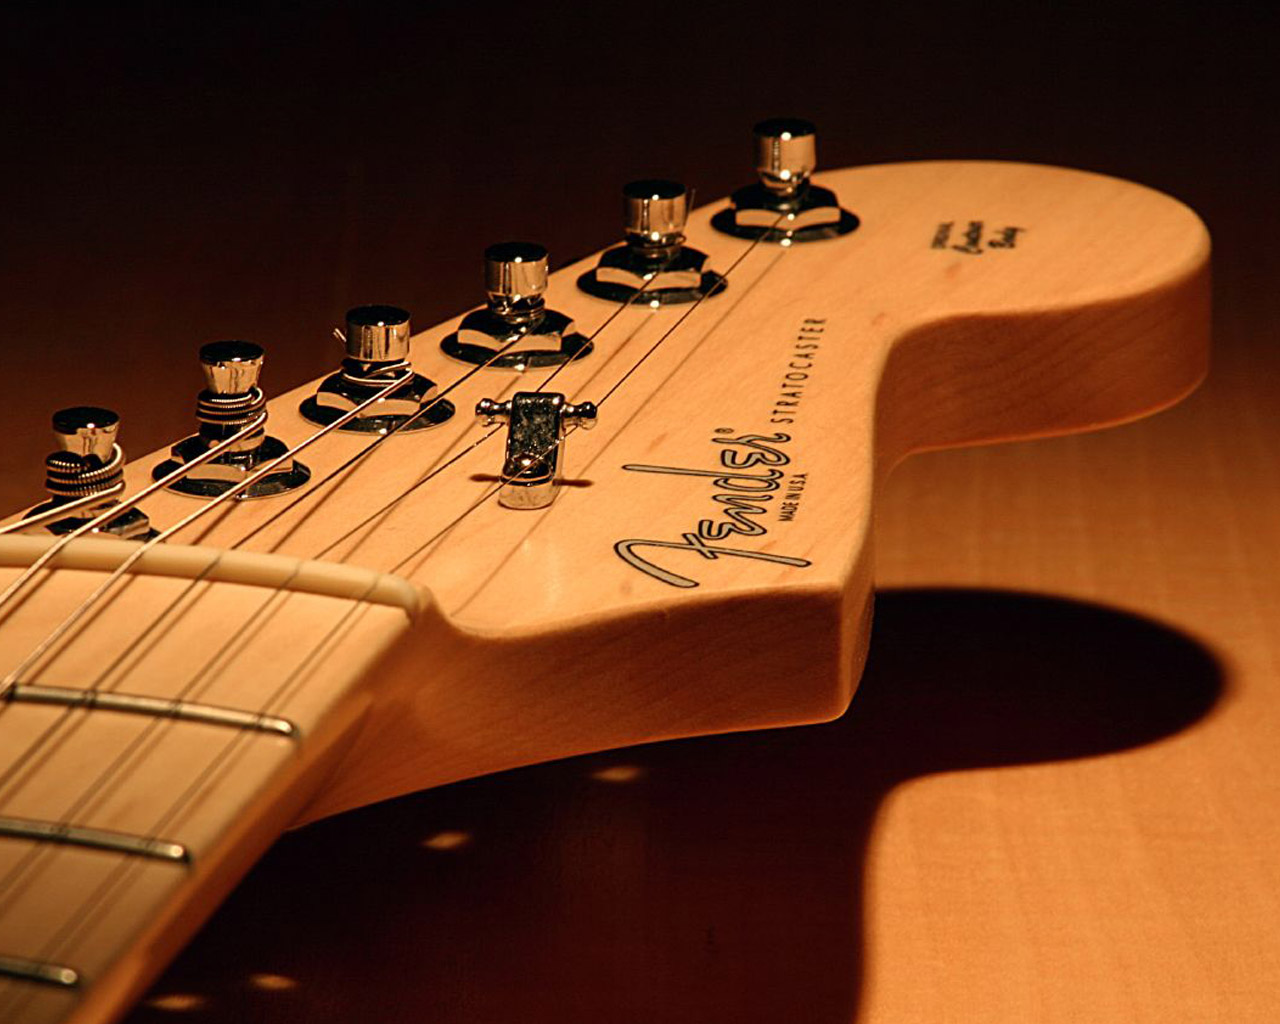 Fender Stratocasters